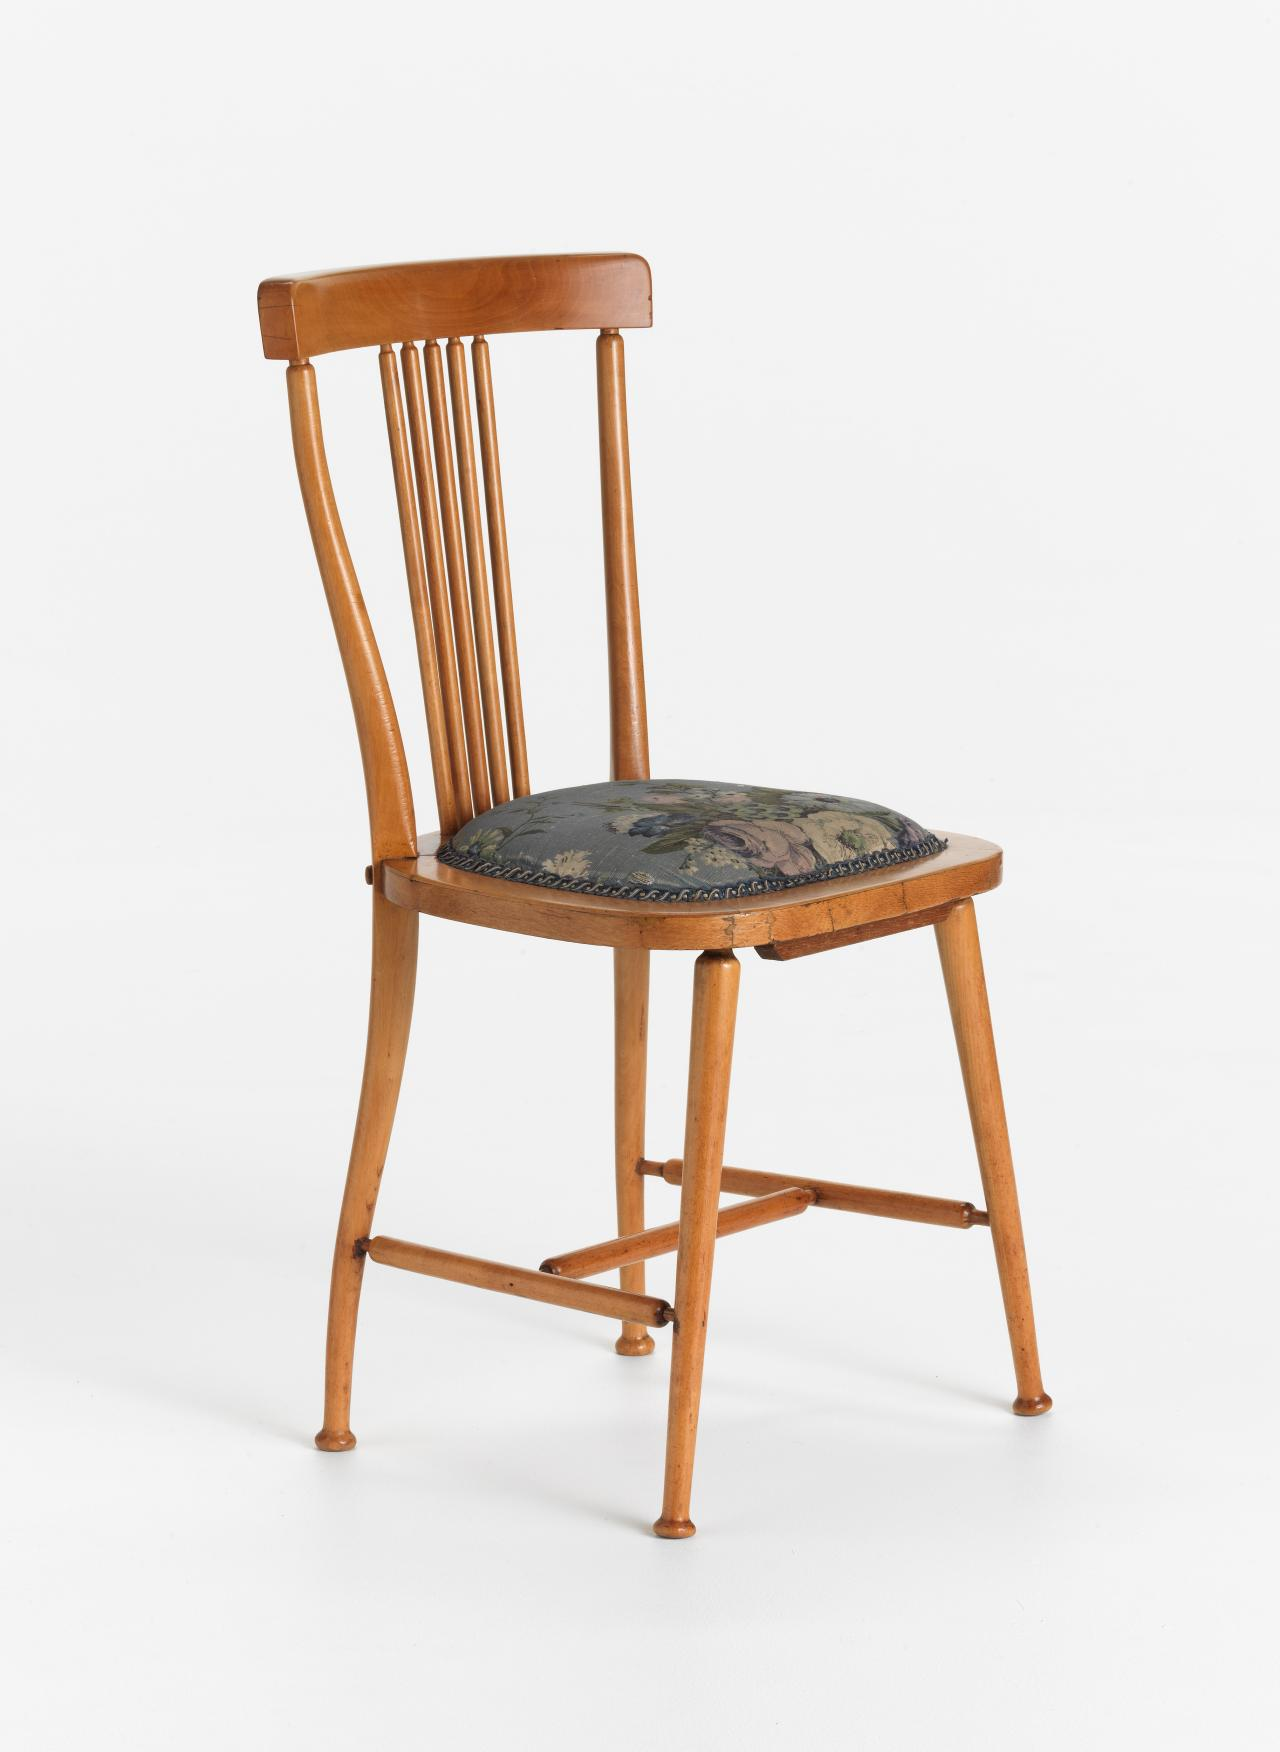 Occasional chair, from the Langer apartment